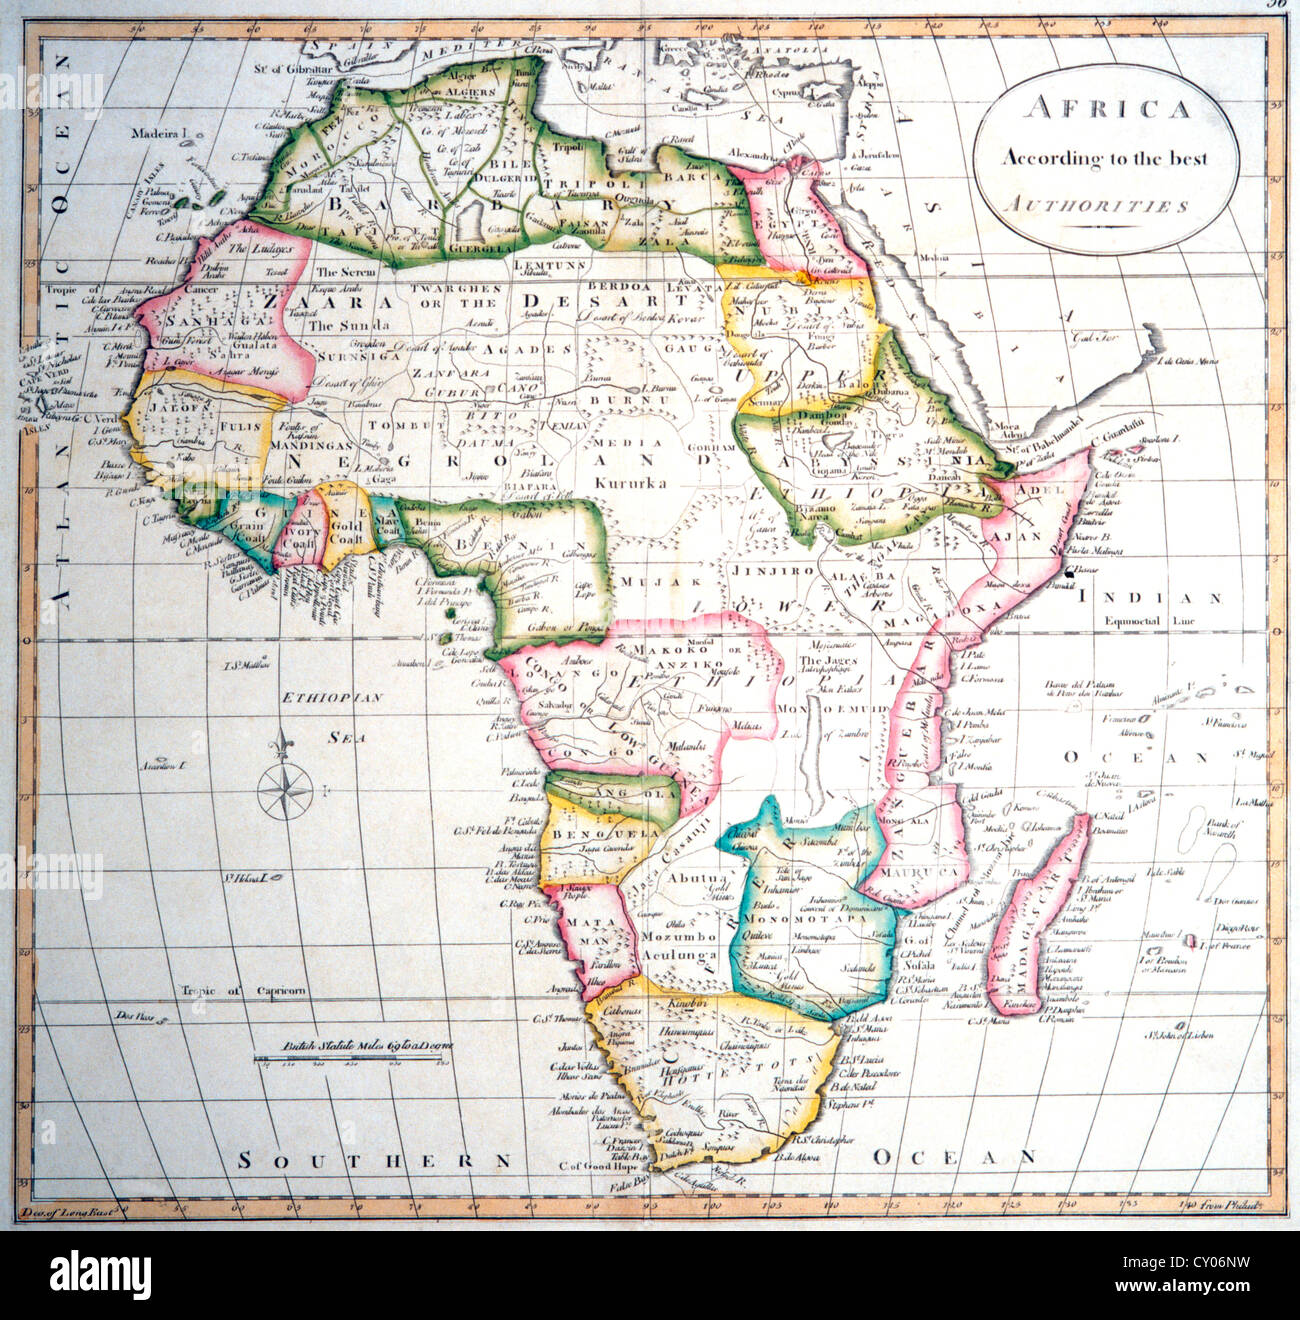 Map Of Africa 1850.Map Africa Stock Photos Map Africa Stock Images Alamy